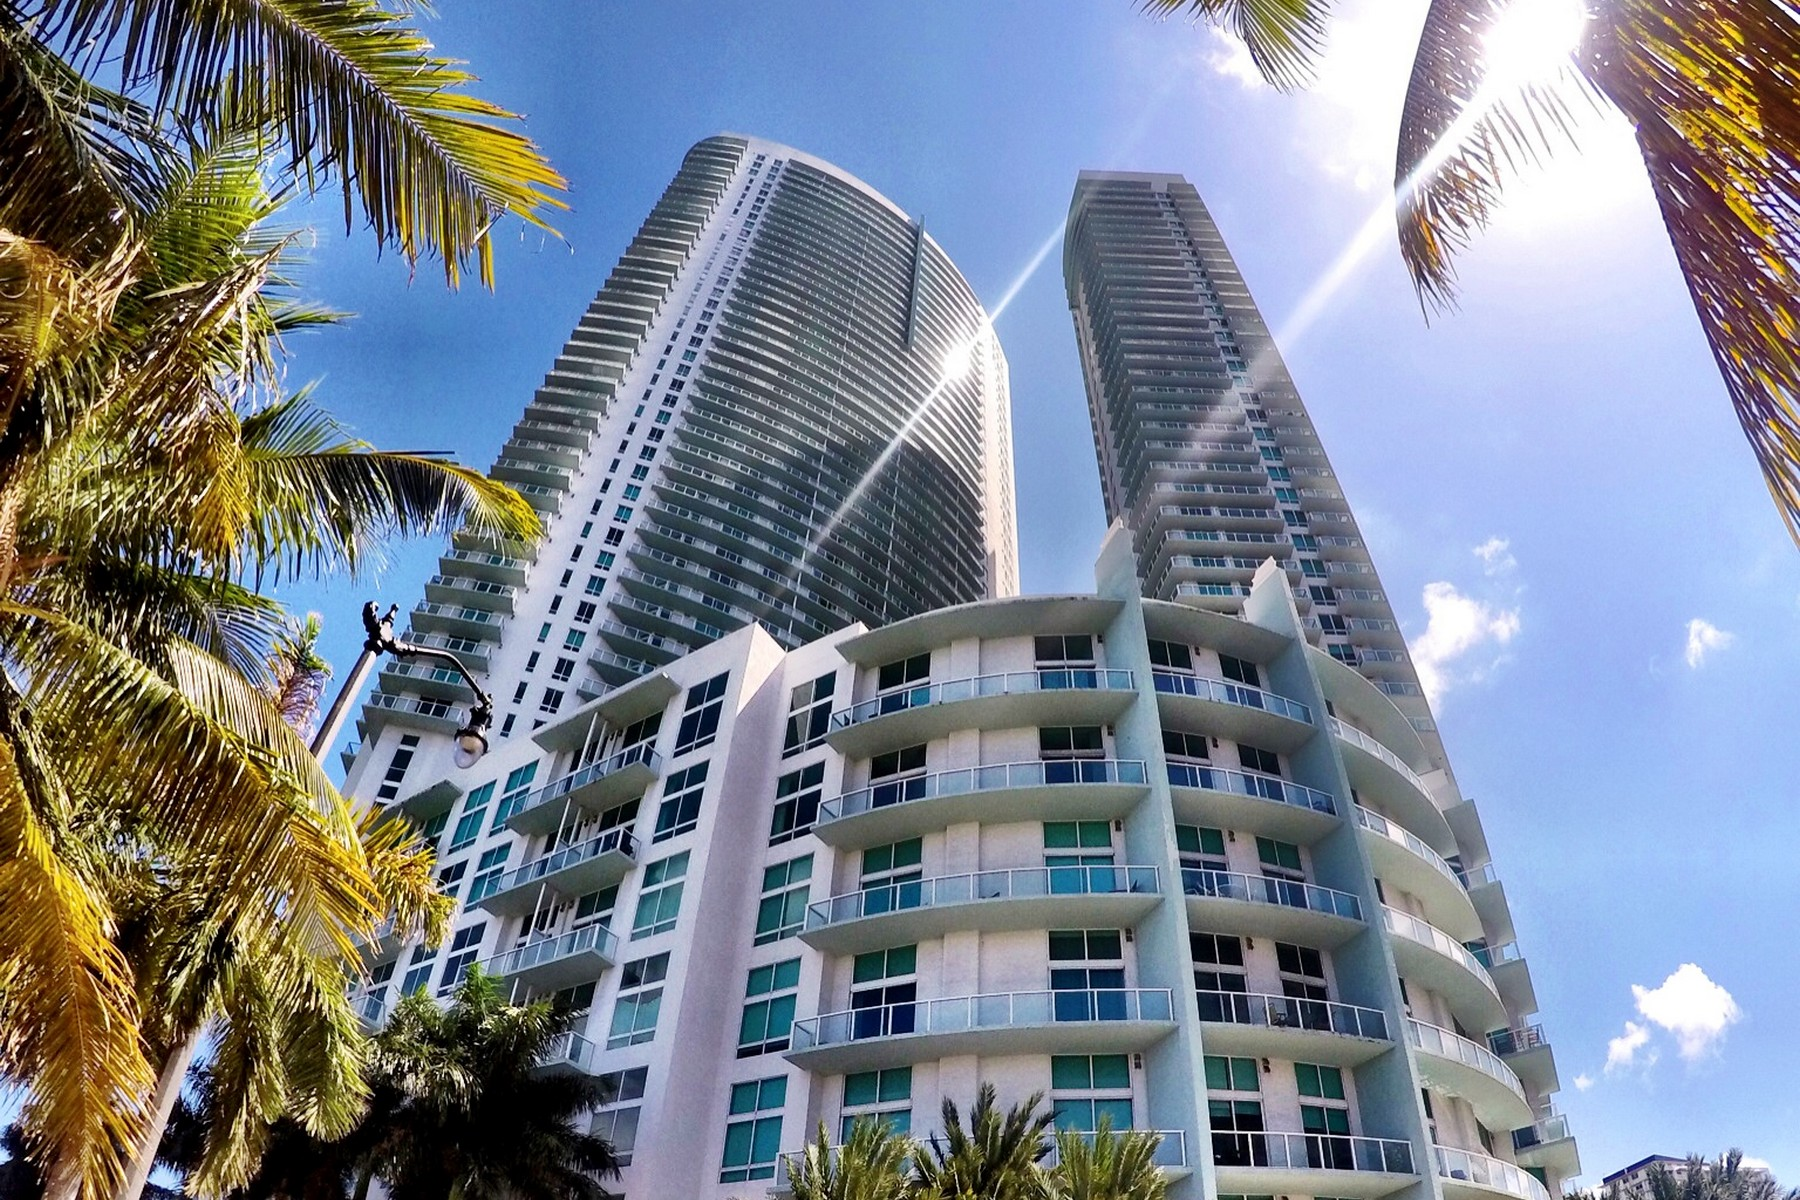 Single Family Home for Sale at 1900 N Bayshore Dr. # 3905 Miami, Florida 33132 United States